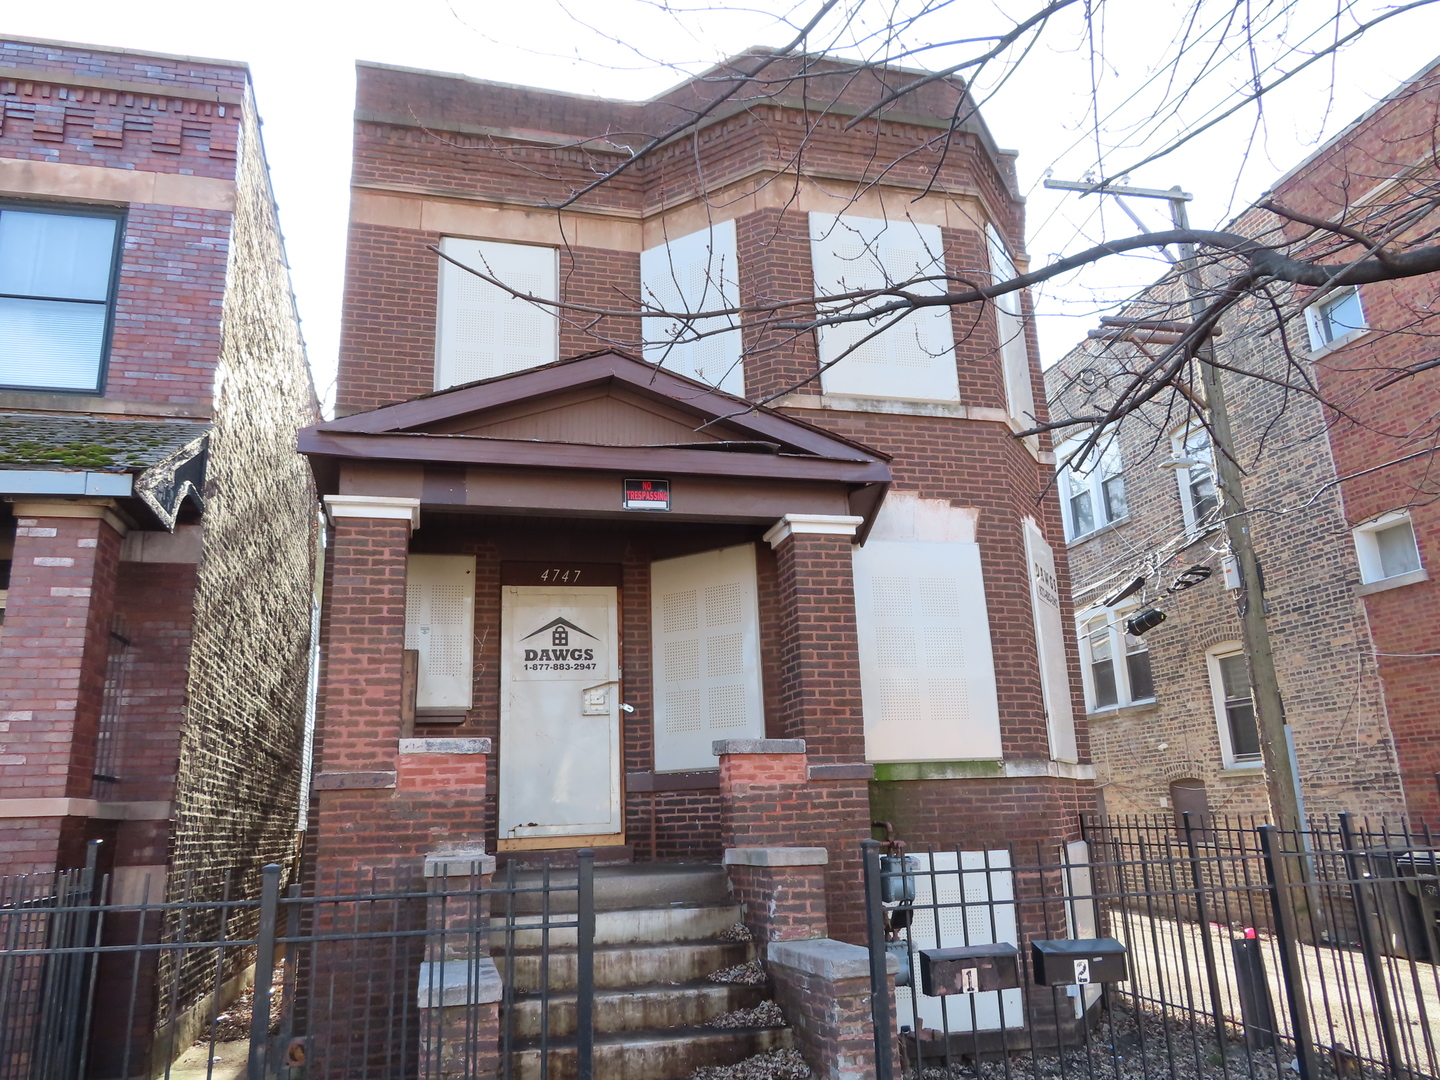 Calling all investors & rehabbers!!! 2-story brick legal 2-flat in need of work. 2nd floor unit is featuring open living room - separate dining room - eat in kitchen w/access to rear porch - 2 bedrooms & 1st full bathroom w/tub. 1st floor unit is featuring open living room - separate dining room - eat in kitchen w/access to rear porch - 3 bedrooms & 2nd full bathroom w/tub. There is full unfinished basement - hardwood floors thru-out the 1st & 2nd floors and ceramic floors in both bathrooms - detached 2-car garage - located on corner lot - fenced in front & rear yard. It is close to public transportation - CTA buses on CICERO AVENUE AND MADISON STREET & BLUE LINE L-TRAIN - 290 expressway - schools - Clark (John) Park - stores & fast food restaurants!!! Do not wait and schedule your appointment with your real estate agent today!!!